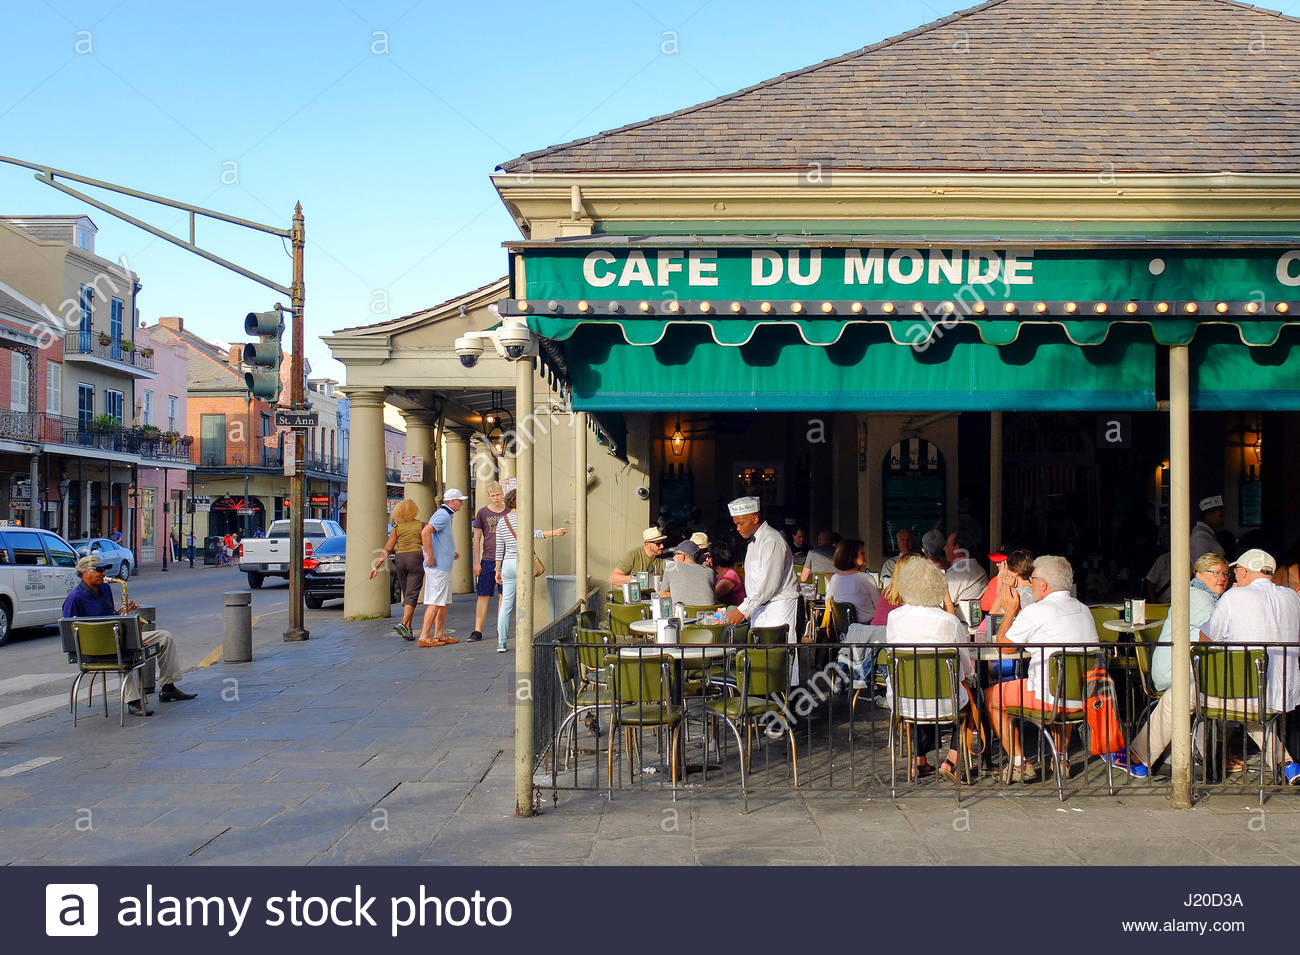 United States, Louisiana, New Orleans. Cafe du Monde in the French Quarter, known for chicory coffee and beignets. - Stock Image